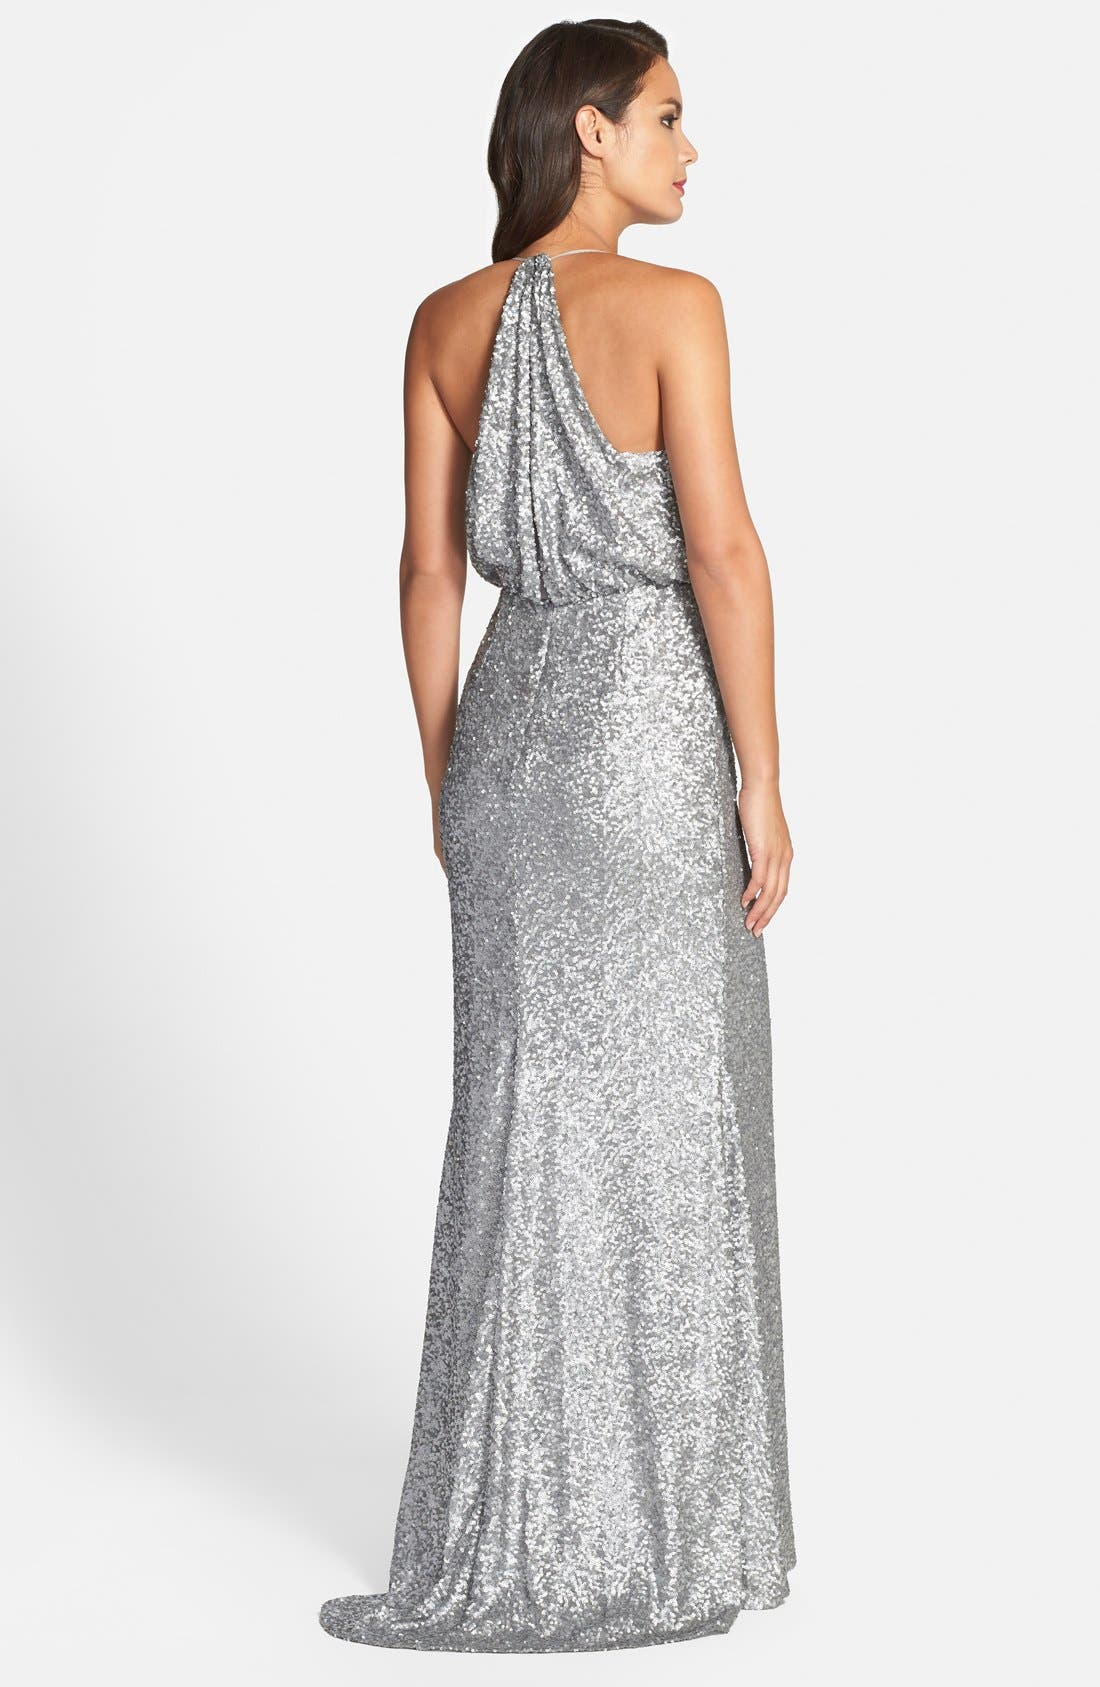 Badgley Mischka Sequin Mermaid Gown,                             Alternate thumbnail 3, color,                             042